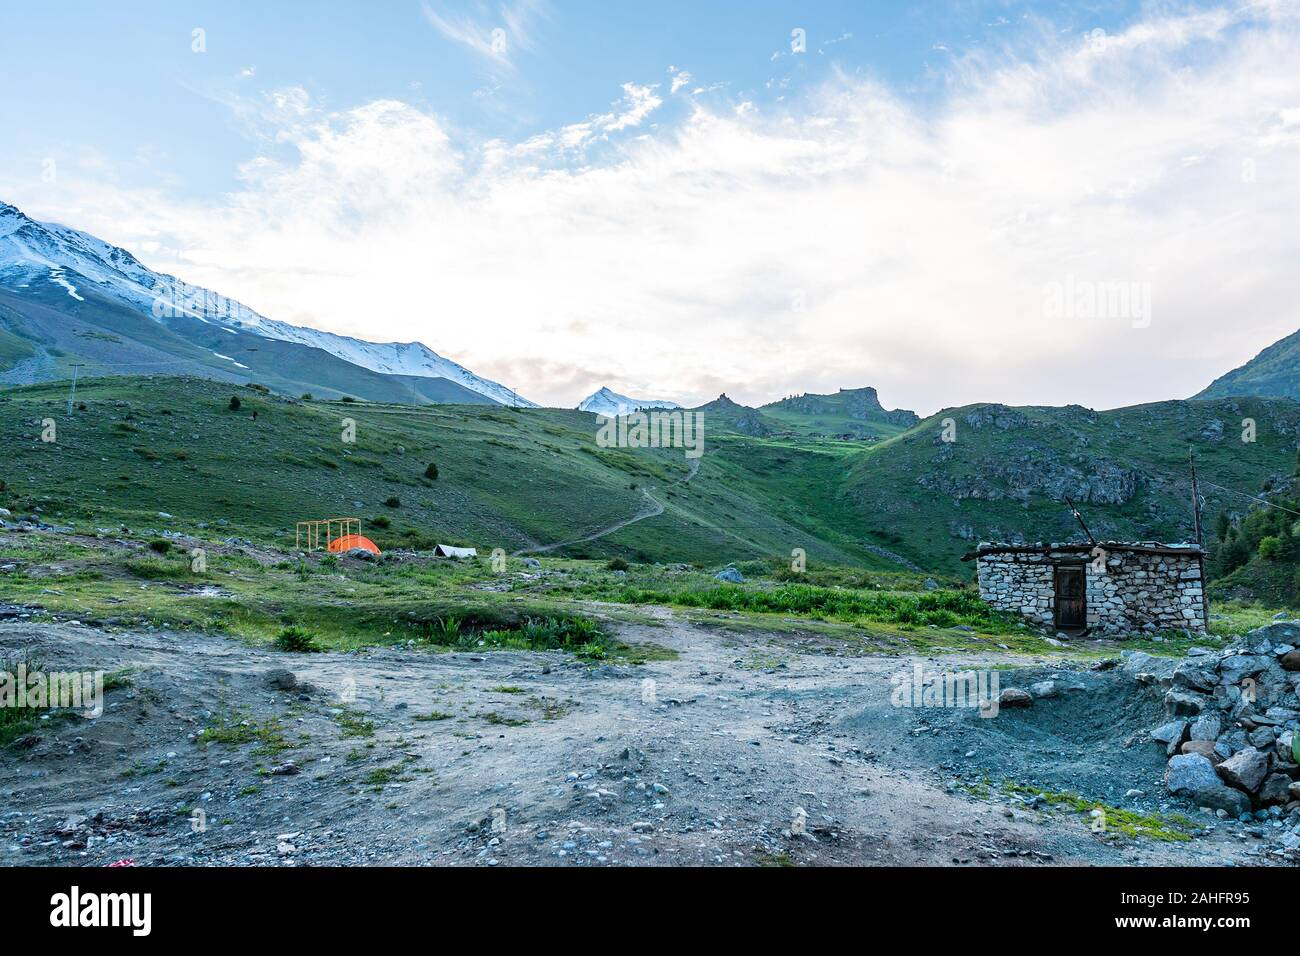 Deosai National Park Chilum Village Picturesque Breathtaking View of Landscape in the Morning with Blue Sky Stock Photo